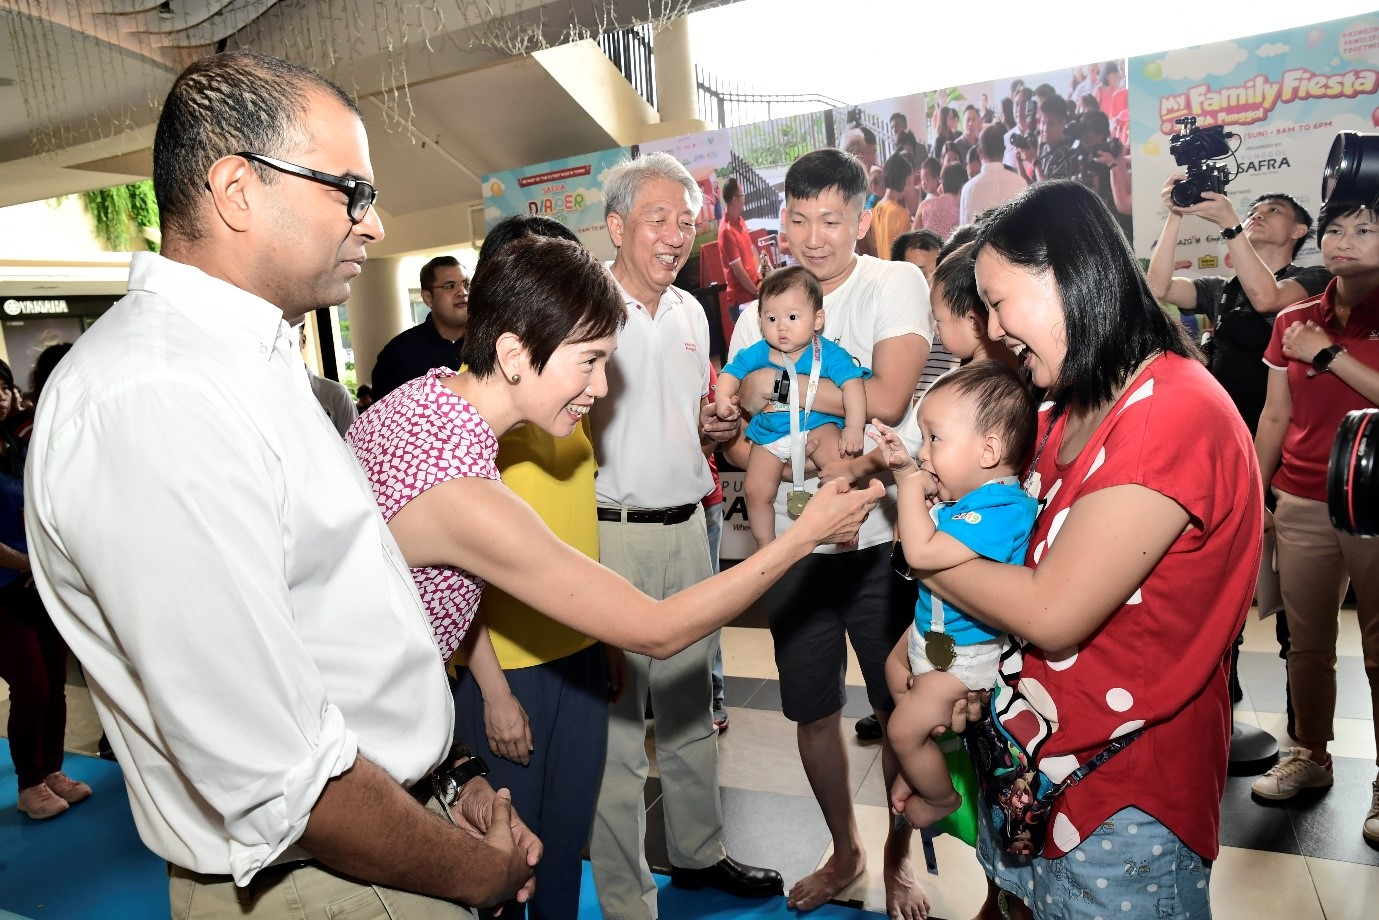 SM Teo, Minister Teo, and SMS Dr Janil spending time with families at My Family Fiesta.